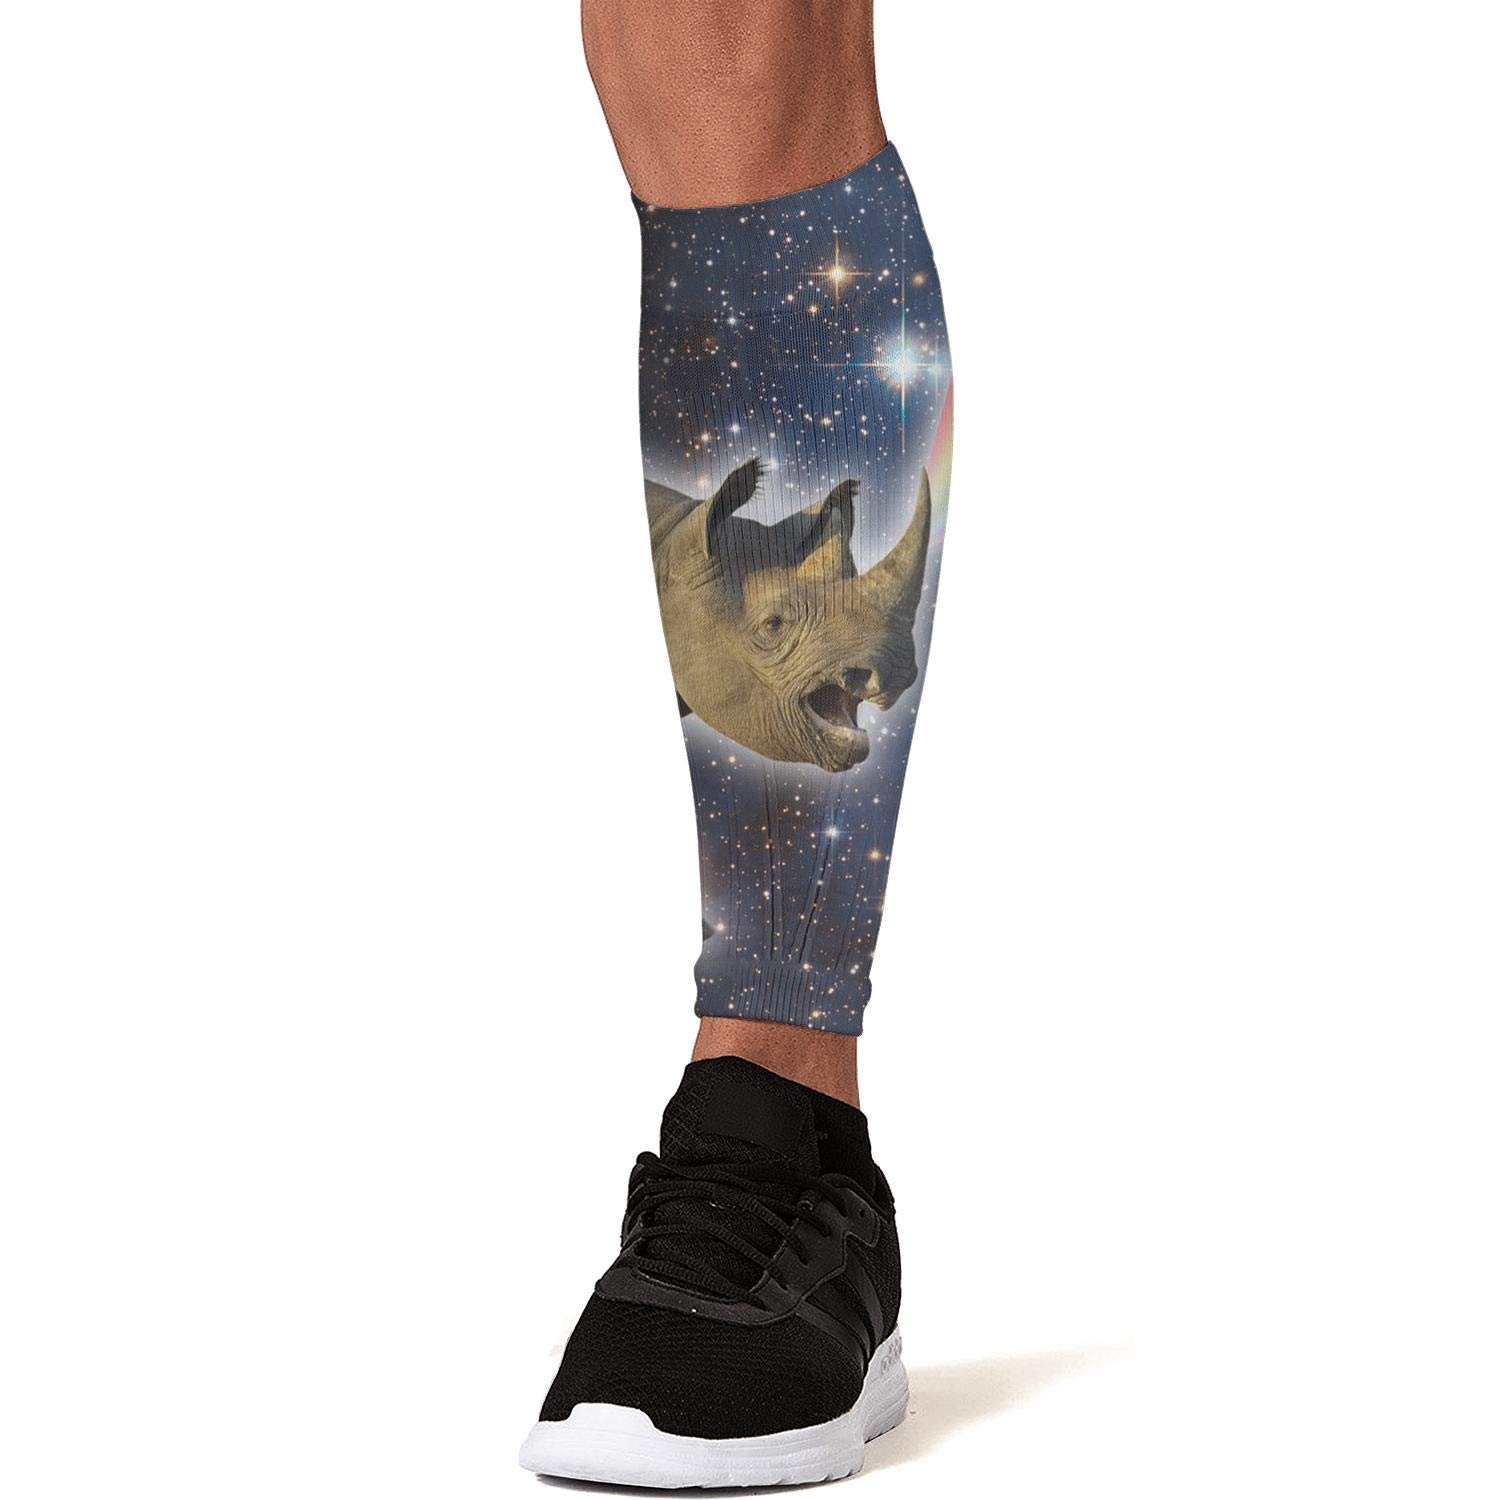 Smilelolly Rhino Rainbow Galaxy Calf Compression Sleeves Helps Faster Recovery Leg Sleeves for Men Women